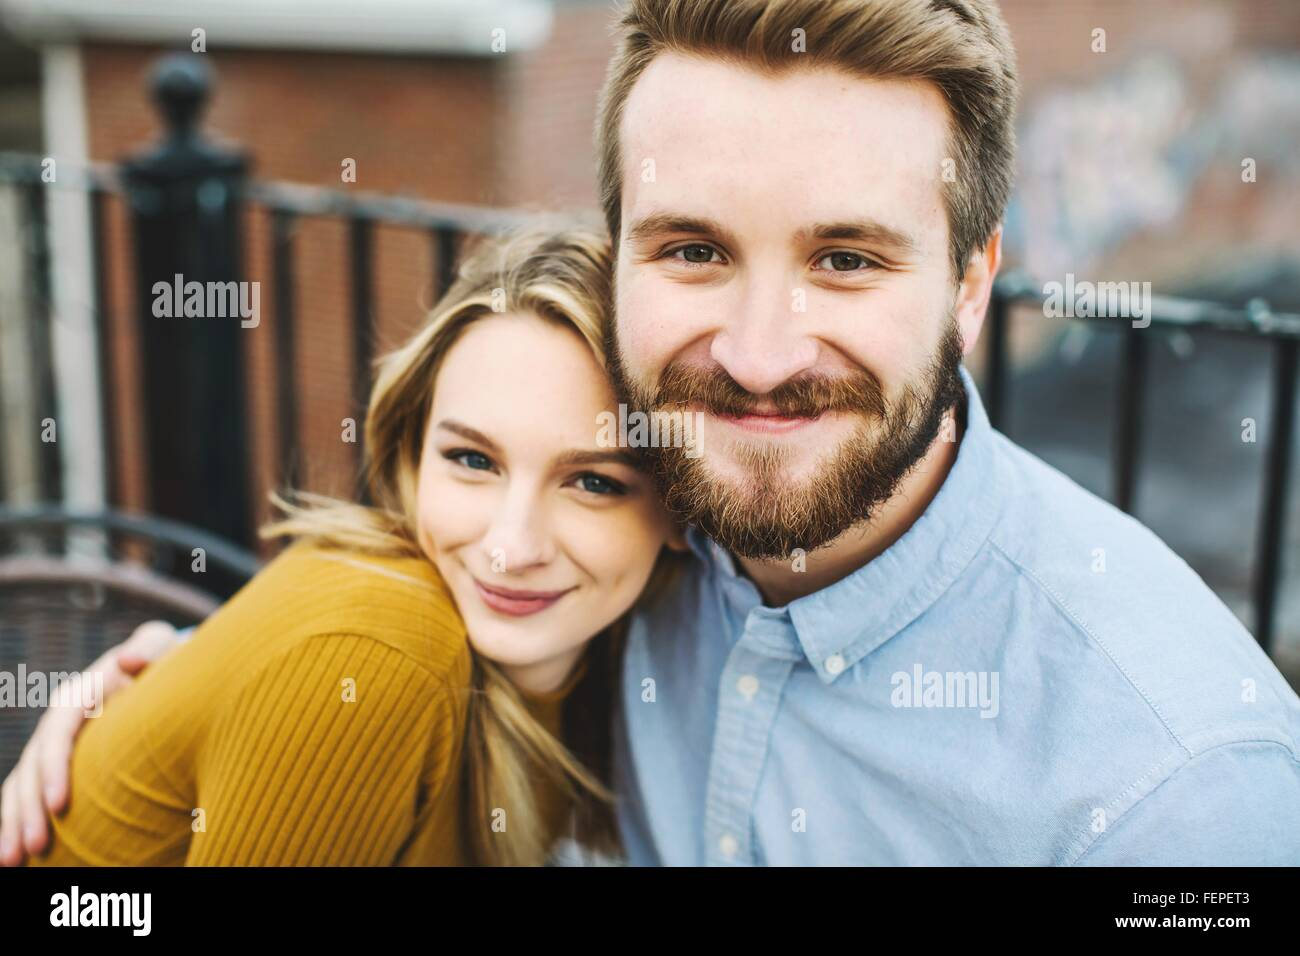 Portrait of romantic young couple on city rooftop terrace - Stock Image